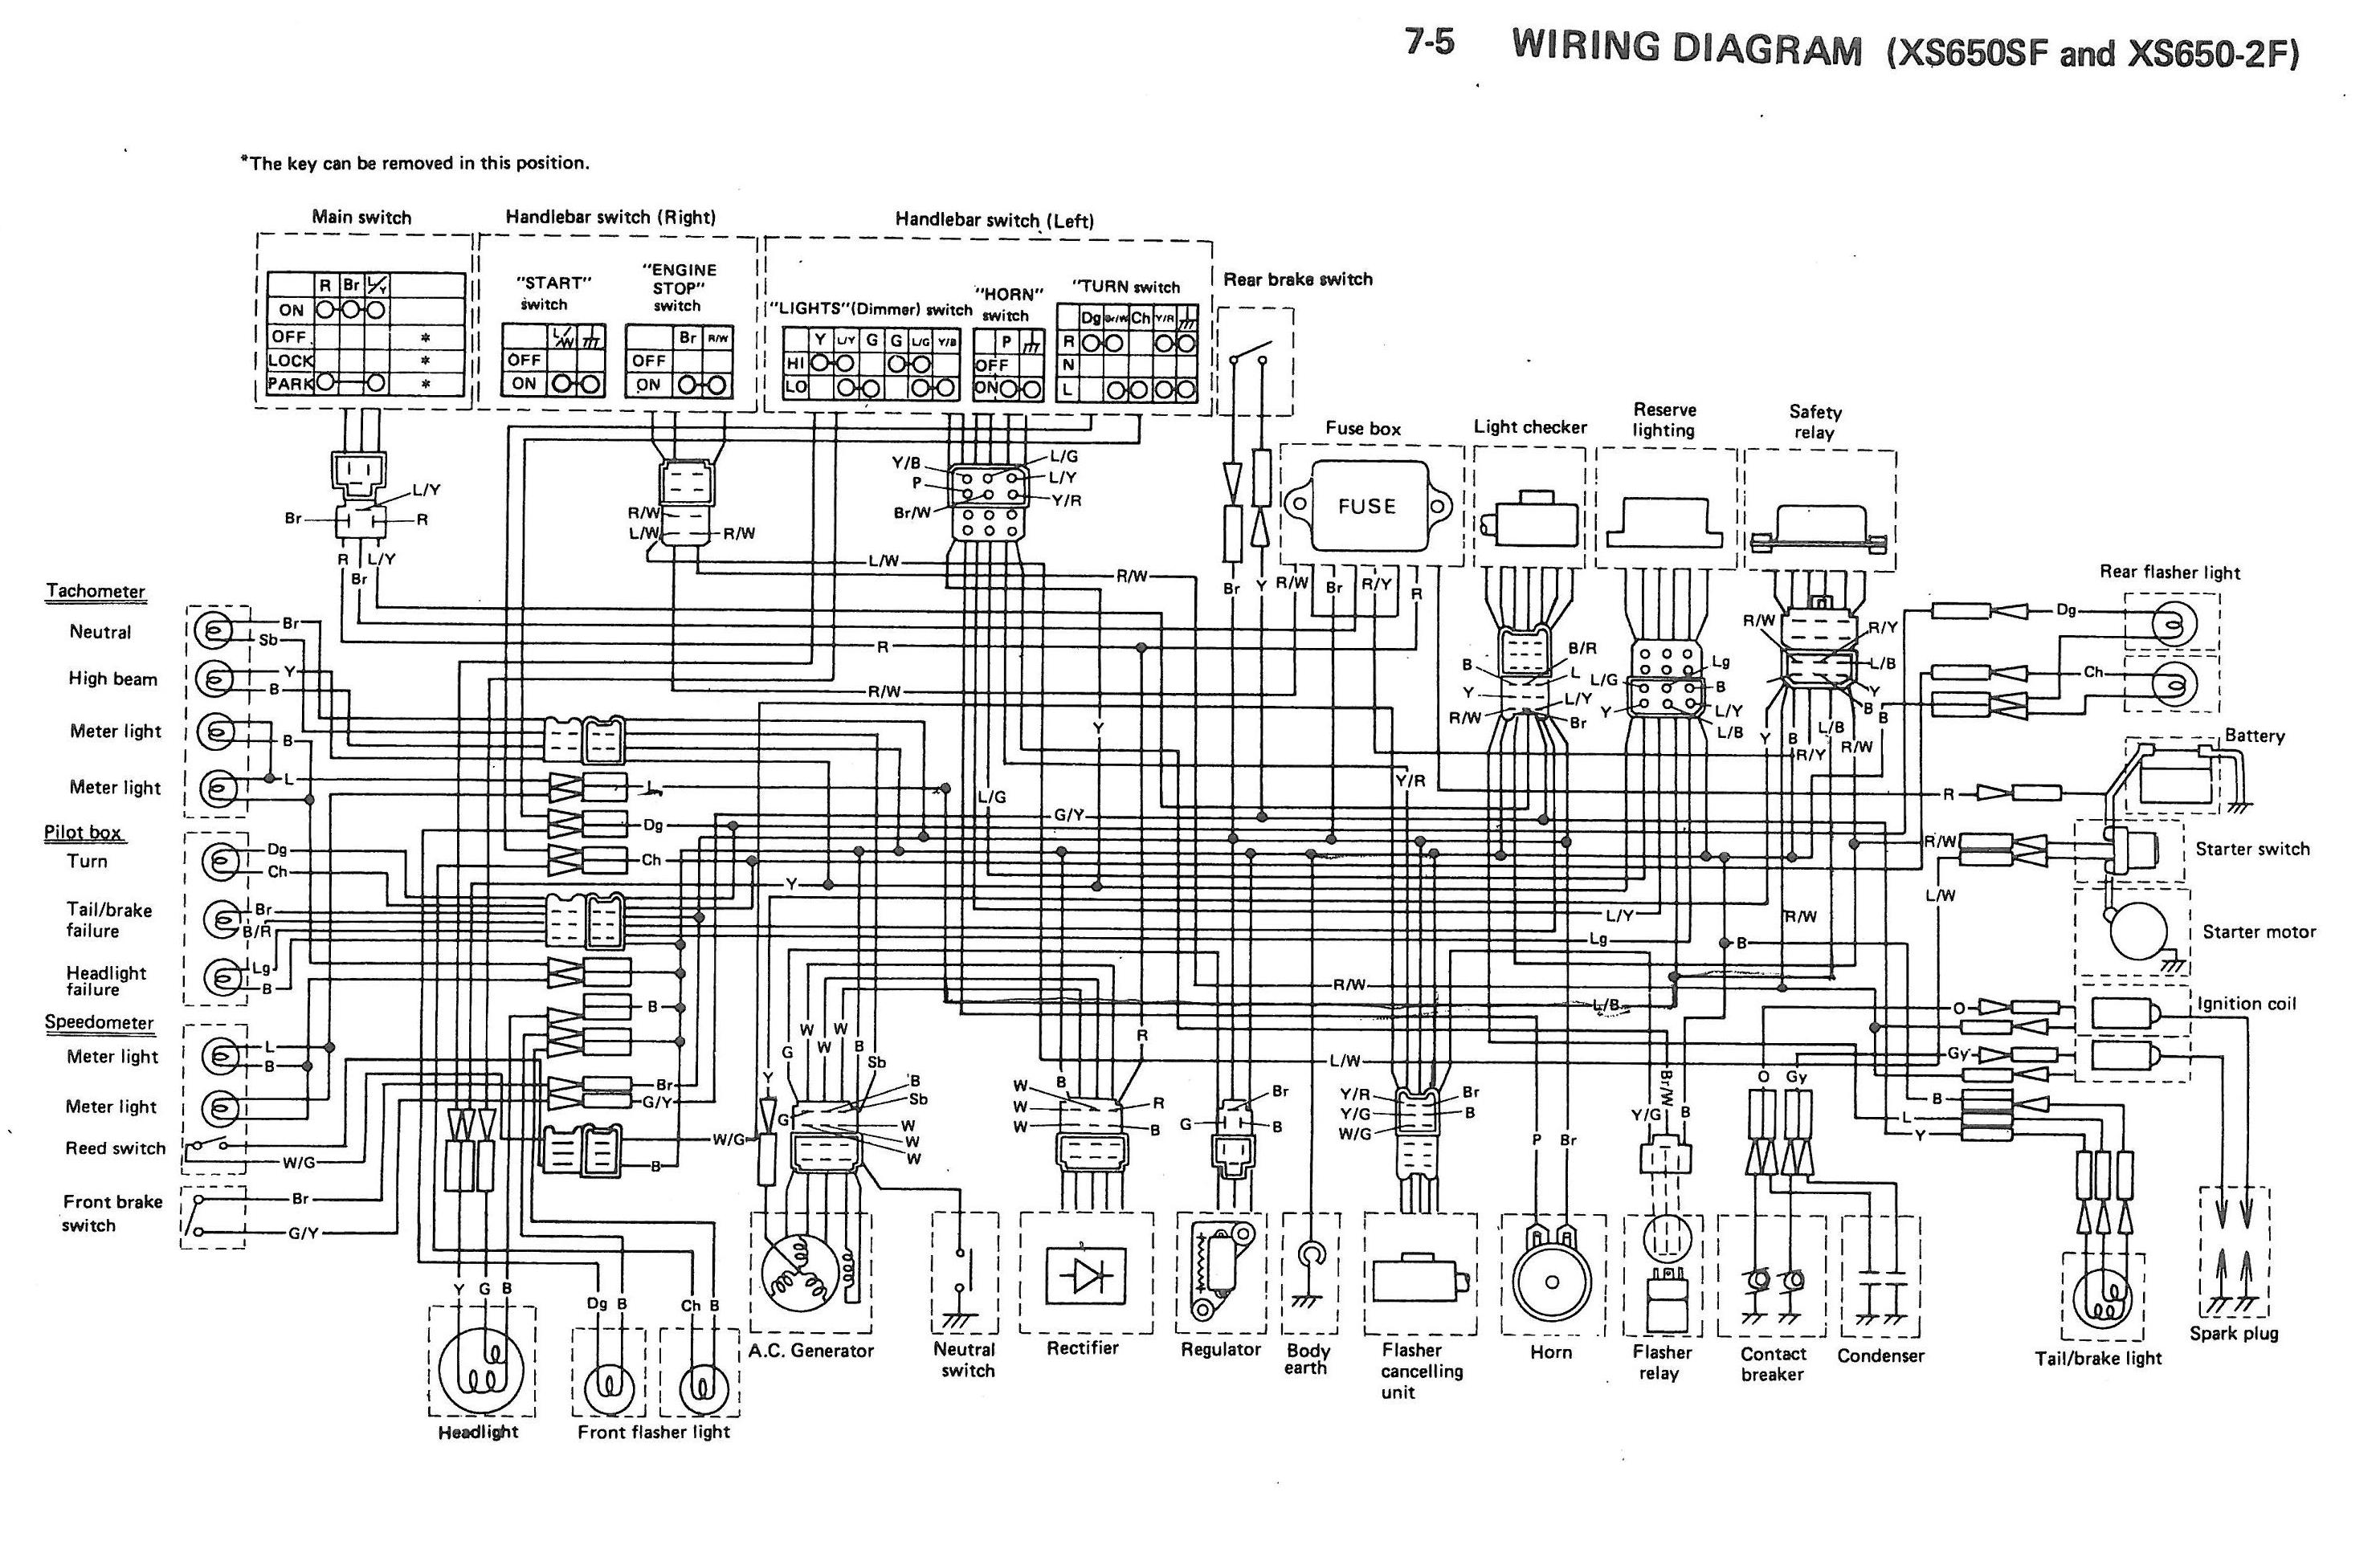 xs650: 79 xs650sf/2f wiring diagrams | thexscafe,Wiring diagram,Xs650 Wiring Diagram